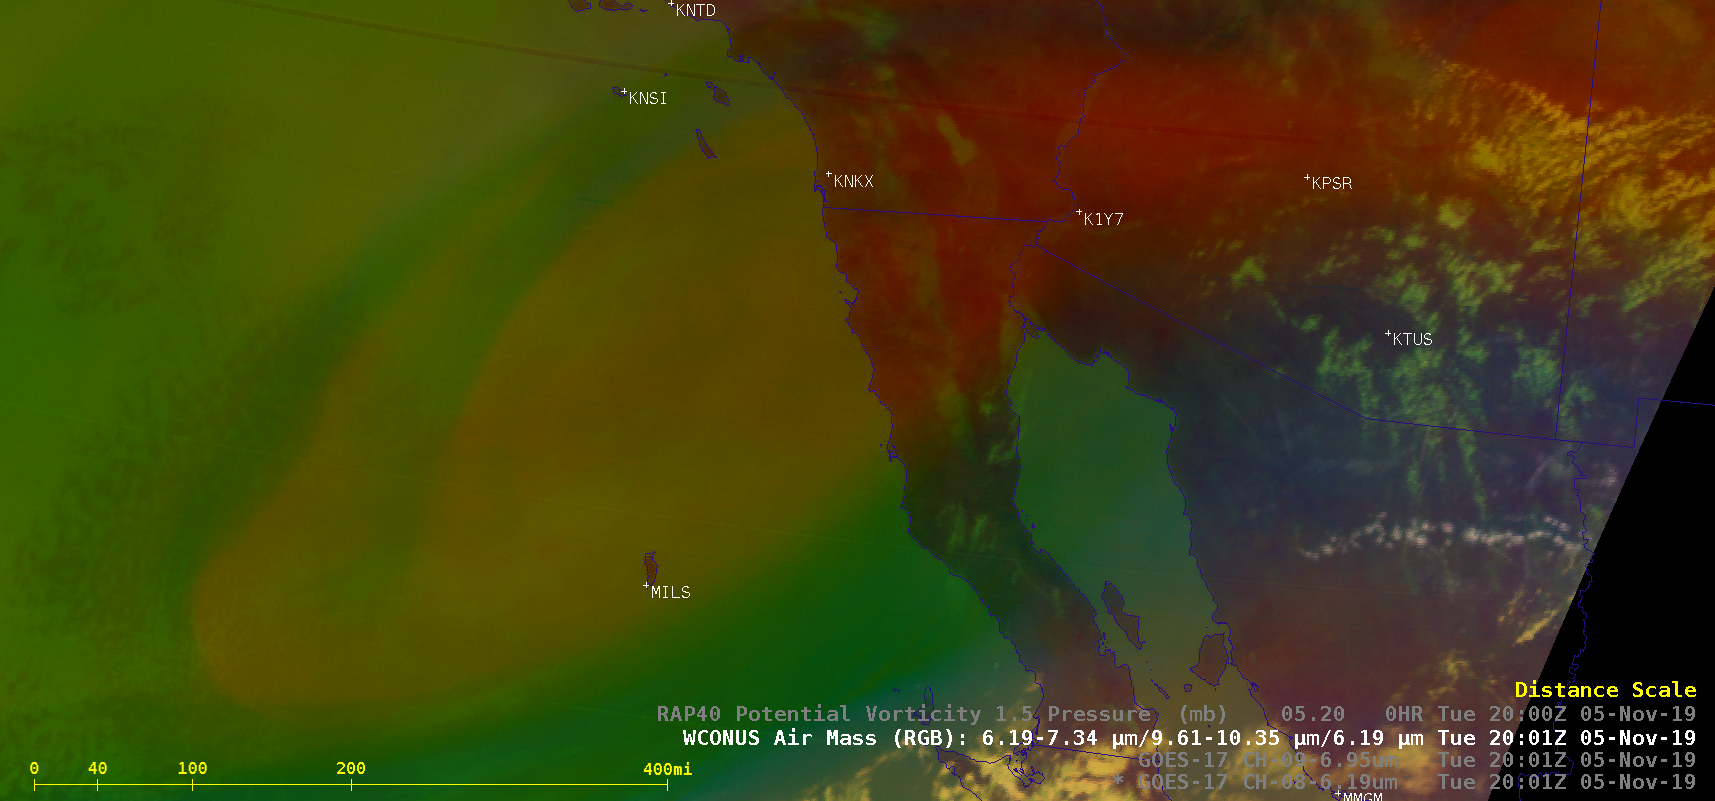 GOES-17 Upper-level Water Vapor (6.2 µm), Mid-level Water Vapor (6.9 µm) and Air Mass RGB images, with and without contours of PV1.5 pressure [click to play animation  MP4]